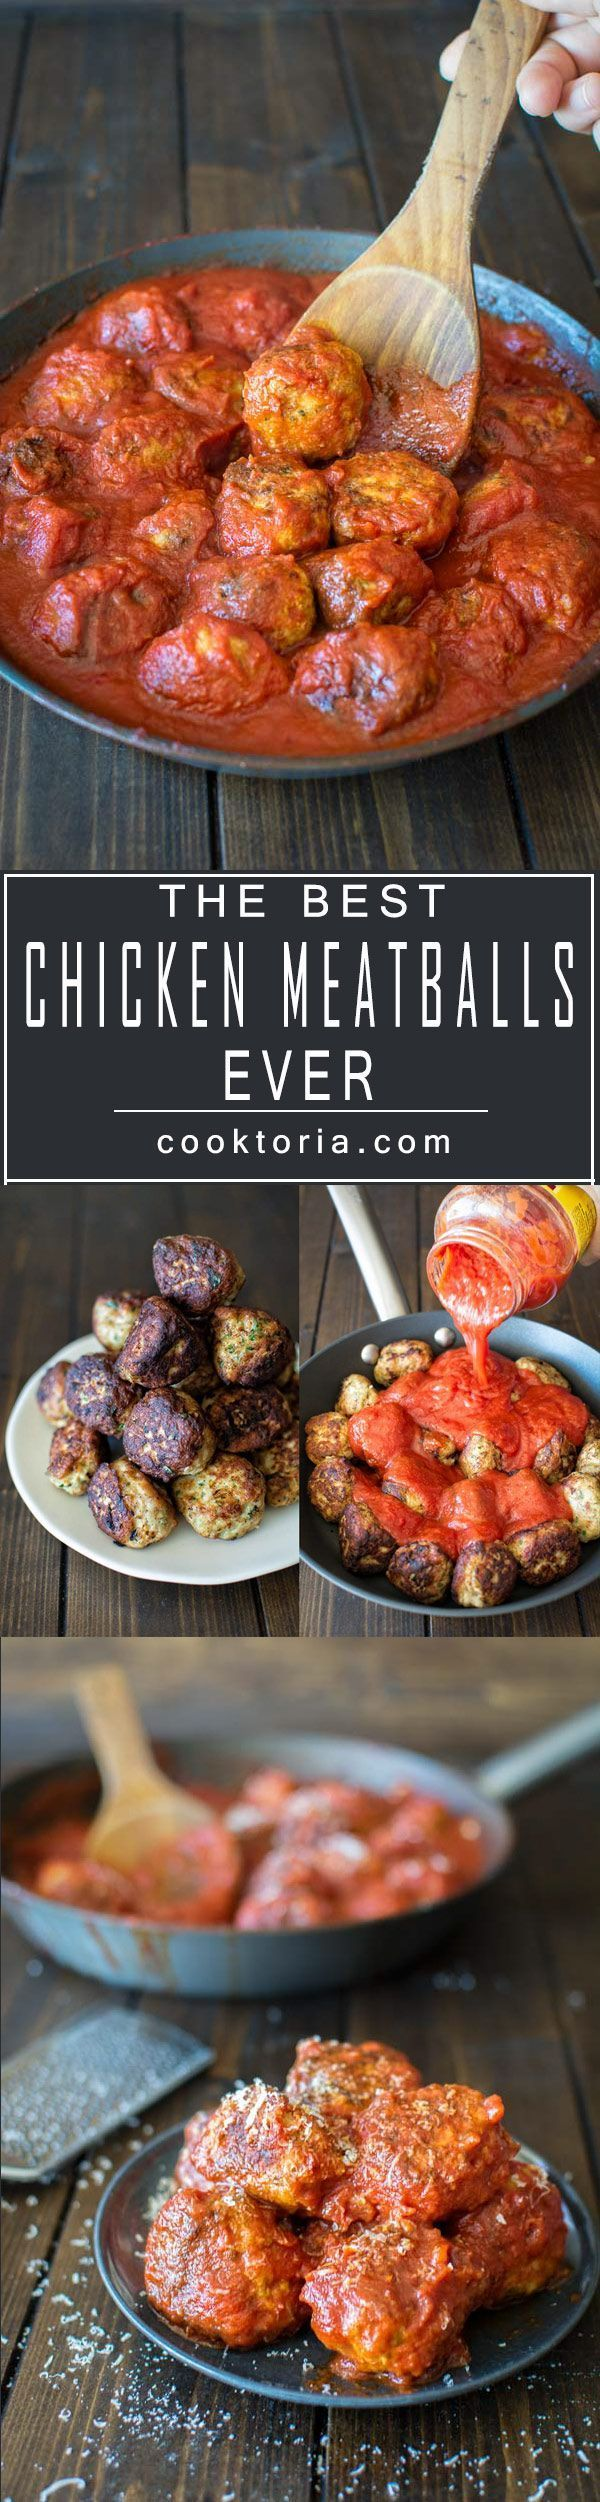 Super moist and flavorful chicken meatballs, covered in rich marinara sauce. This is the only meatballs recipe you'll ever need. Guaranteed. ❤ http://COOKTORIA.COM